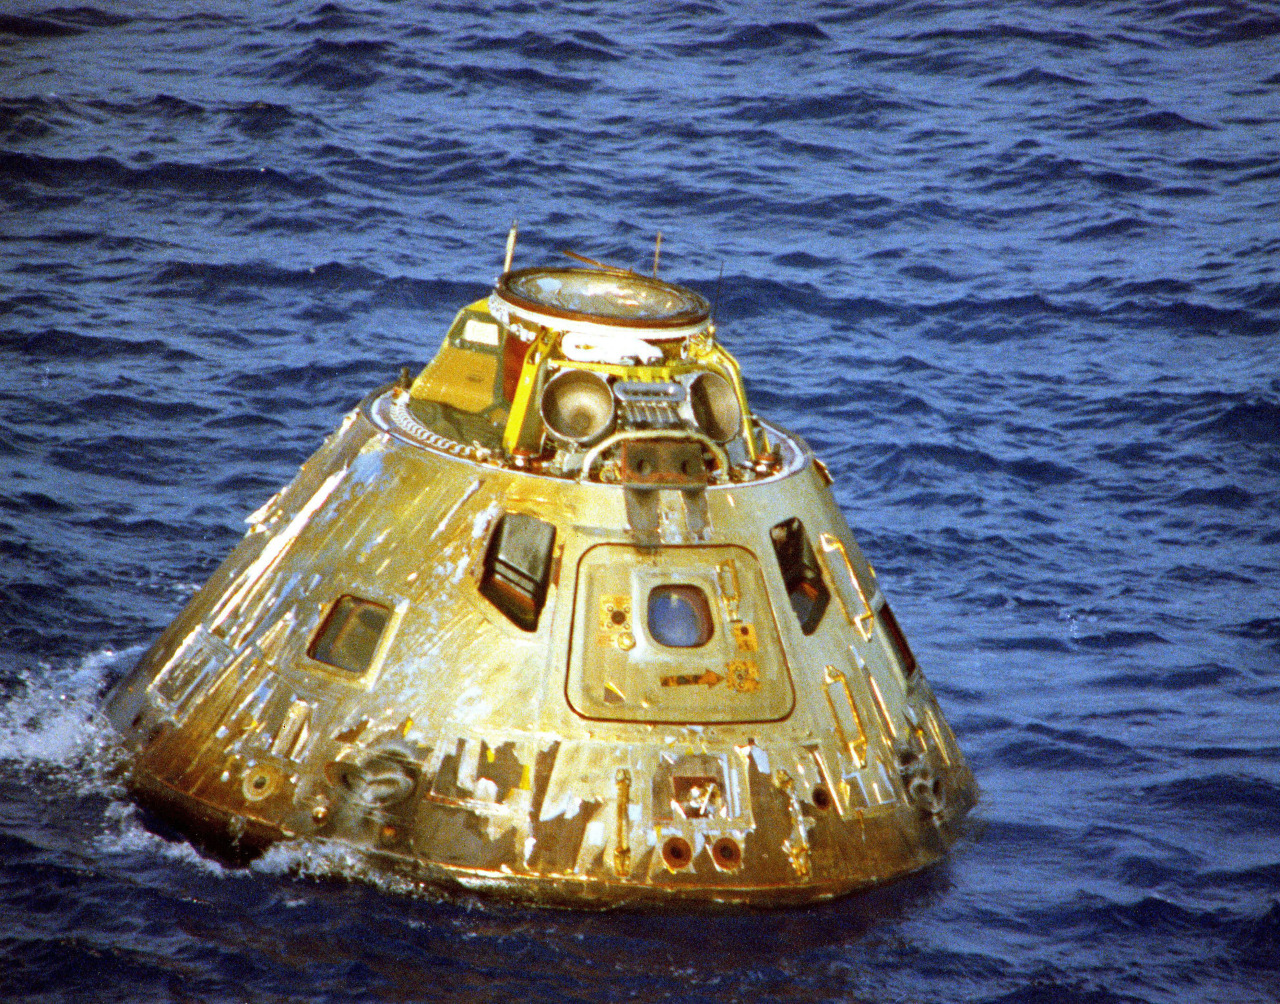 The crew of Apollo 13 had returned to Earth safely, completing one of the most exciting adventures in the history of space exploration - on this date in 1970.